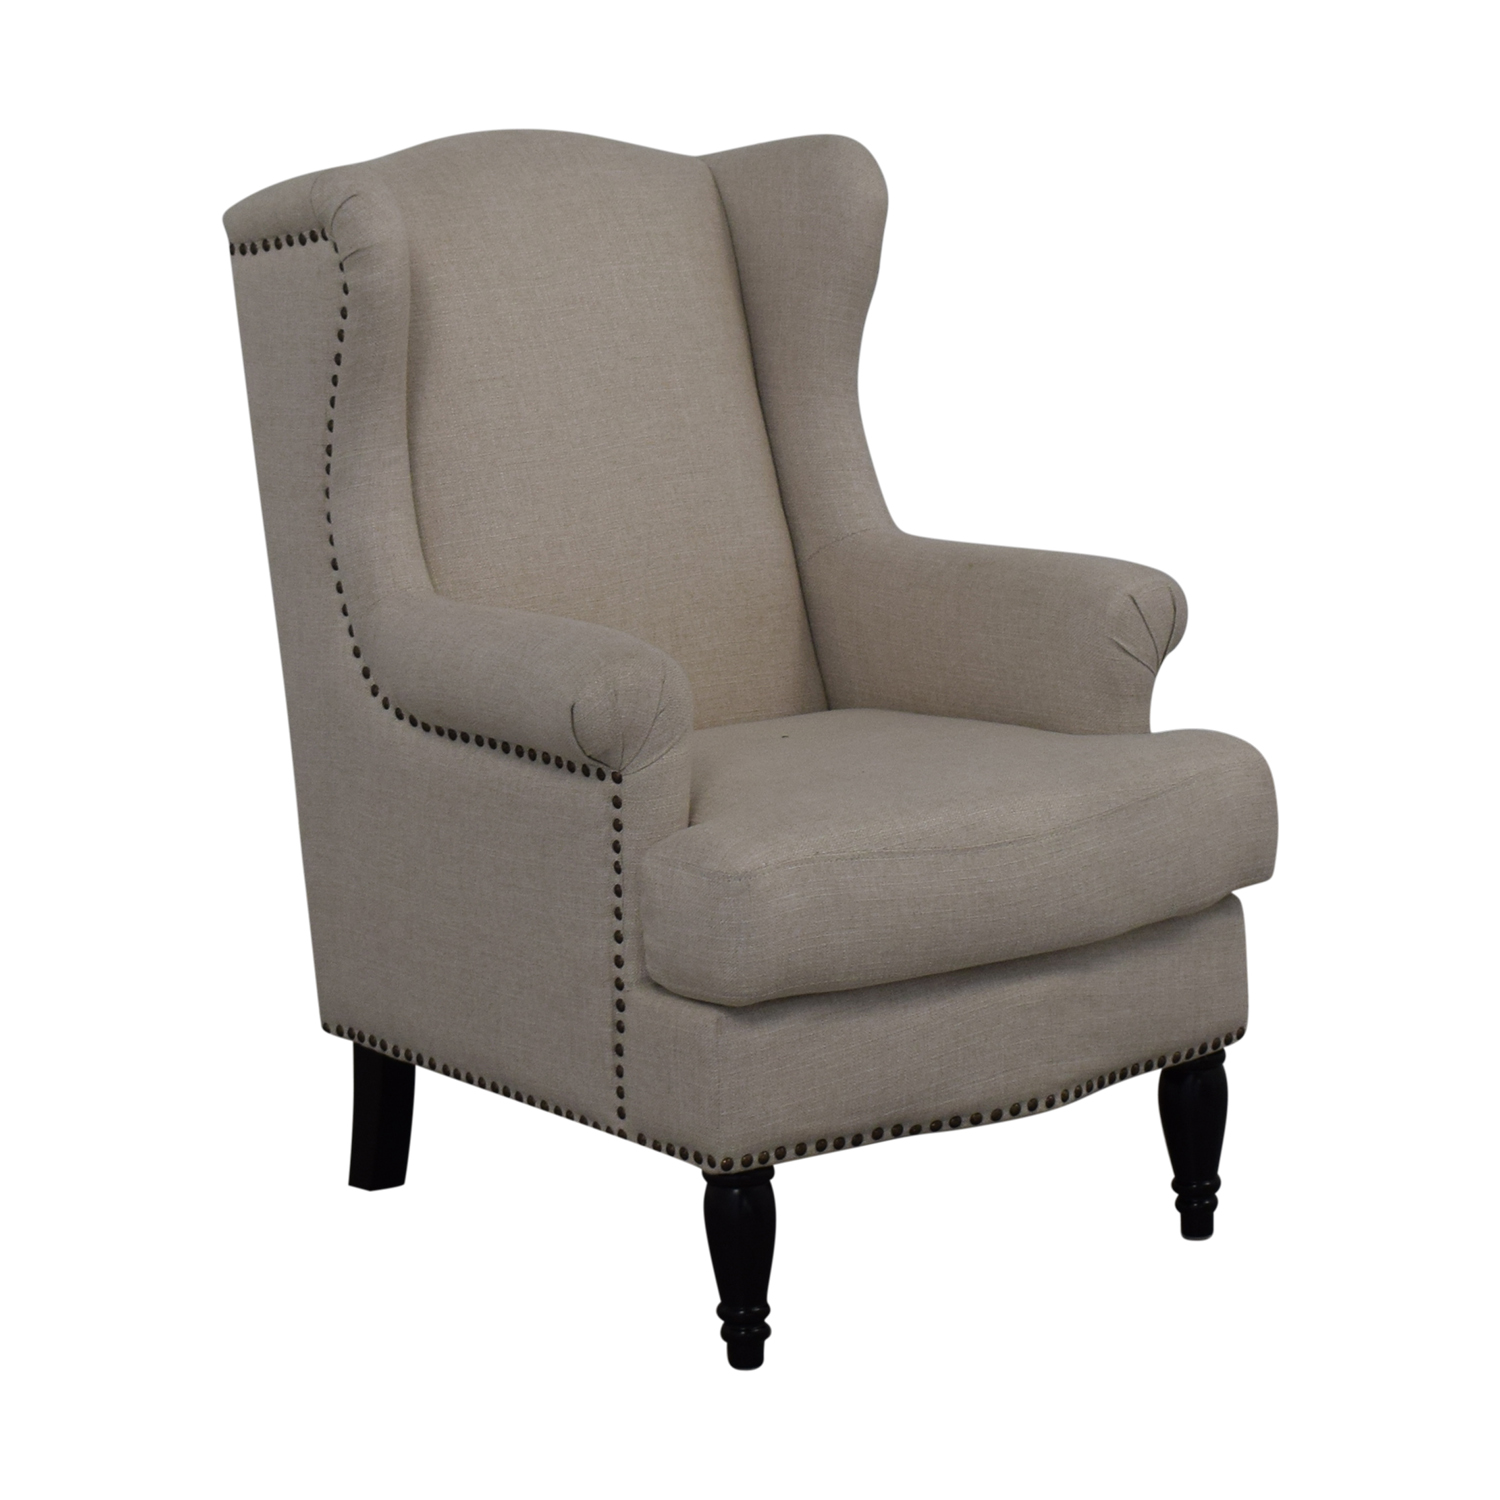 Pottery Barn Soma Delancey Upholstered Wingback Armchair / Chairs